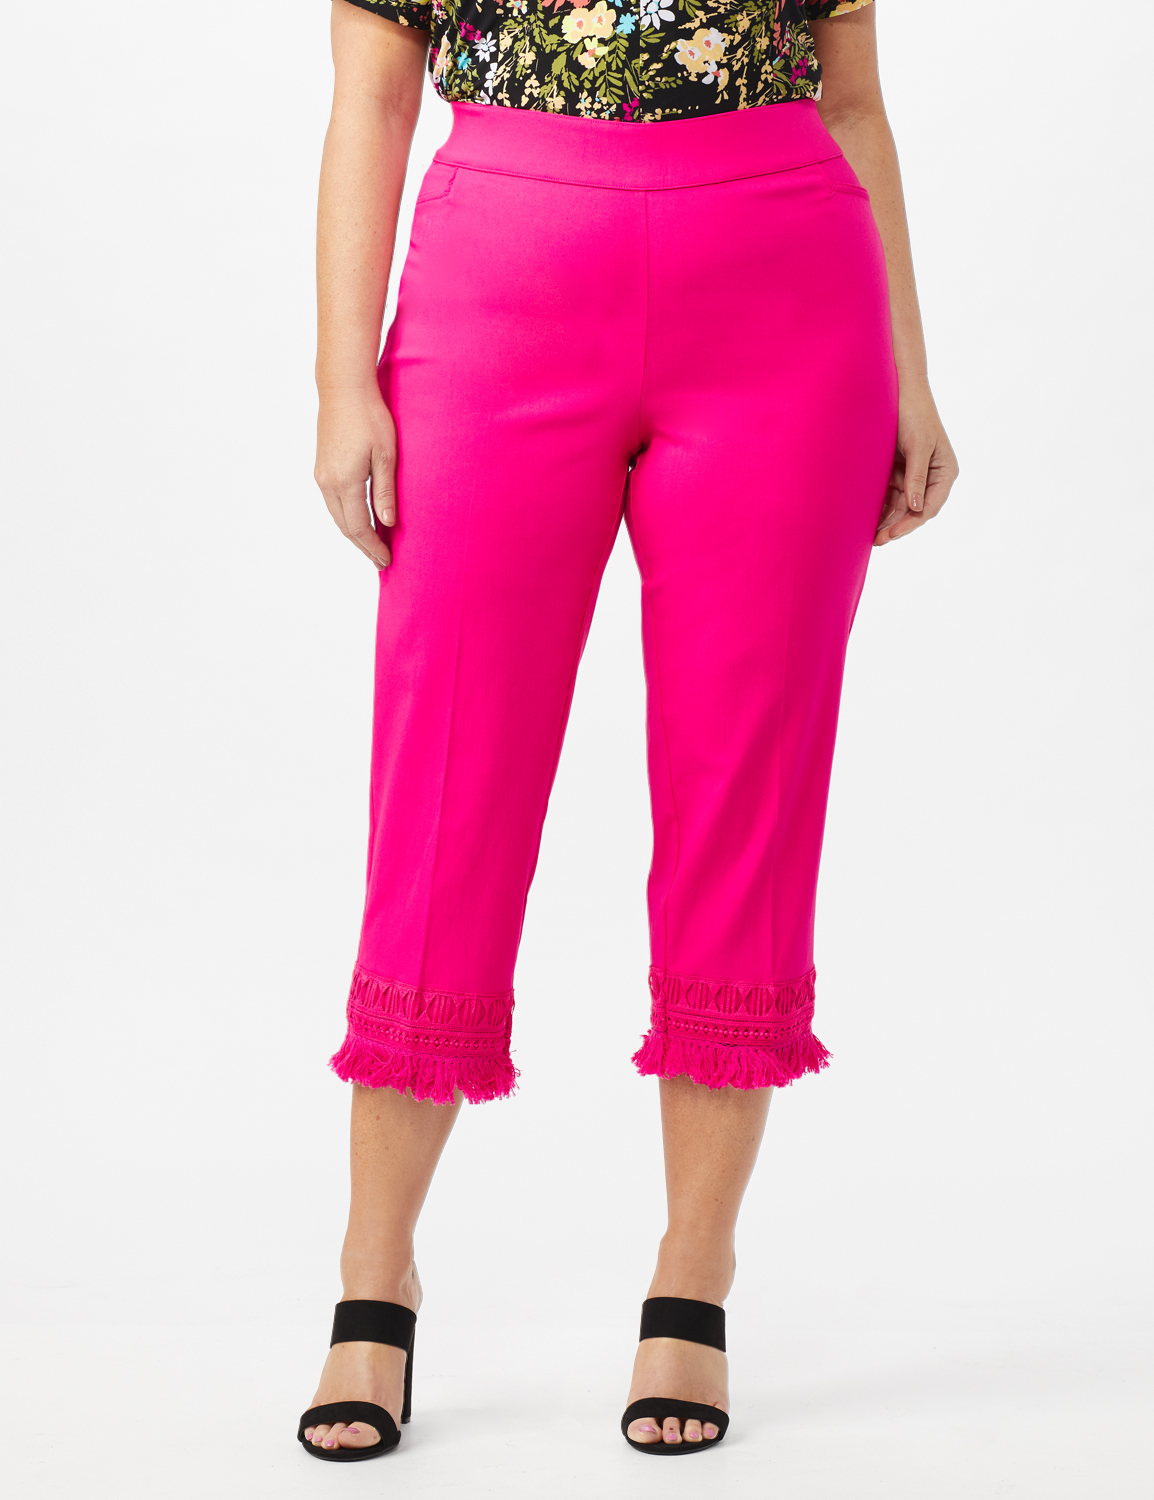 Pull On Crop Pants with Fringe Hem Detail -Watermelon - Front